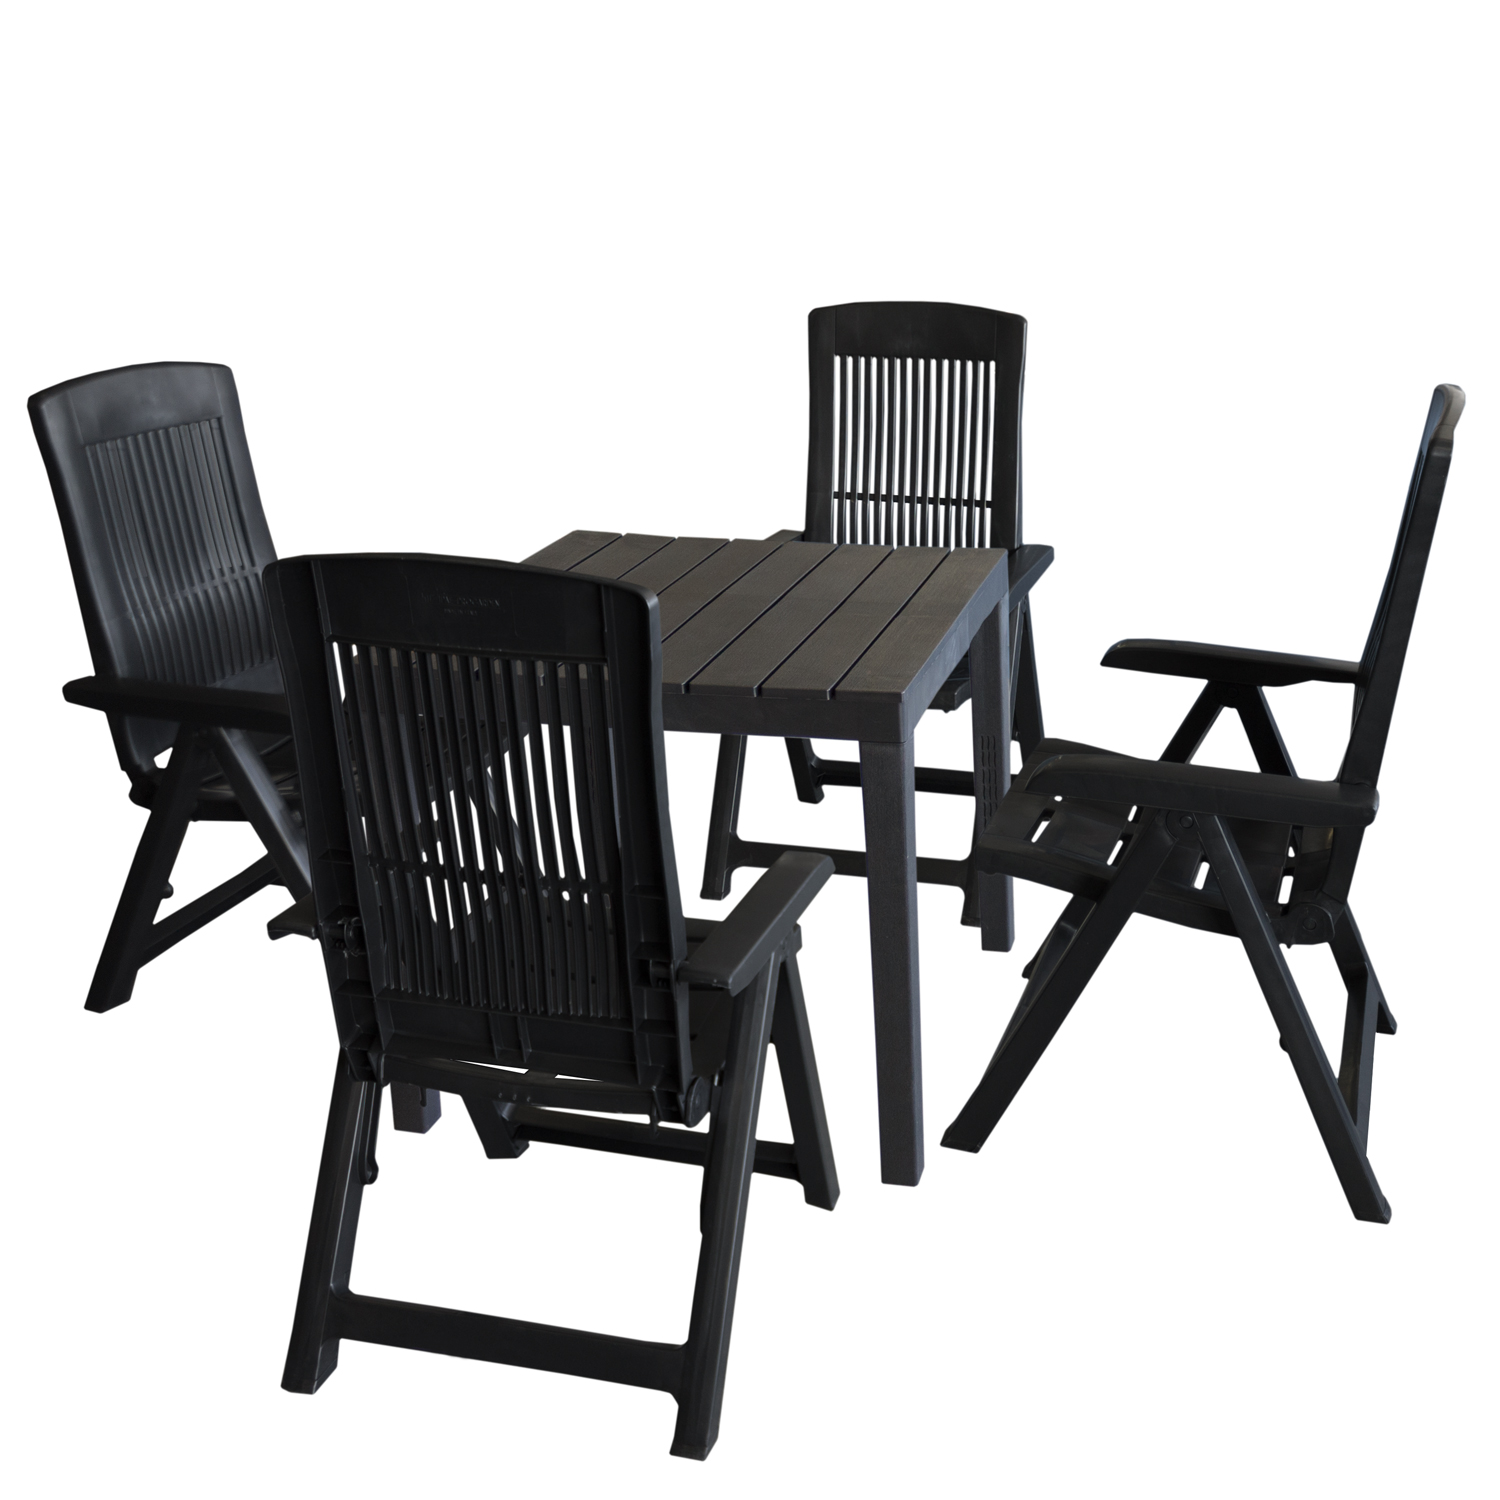 gartenm bel set kunststoff gartentisch 78x78cm 4x klappstuhl tampa anthrazit garten bistro und. Black Bedroom Furniture Sets. Home Design Ideas